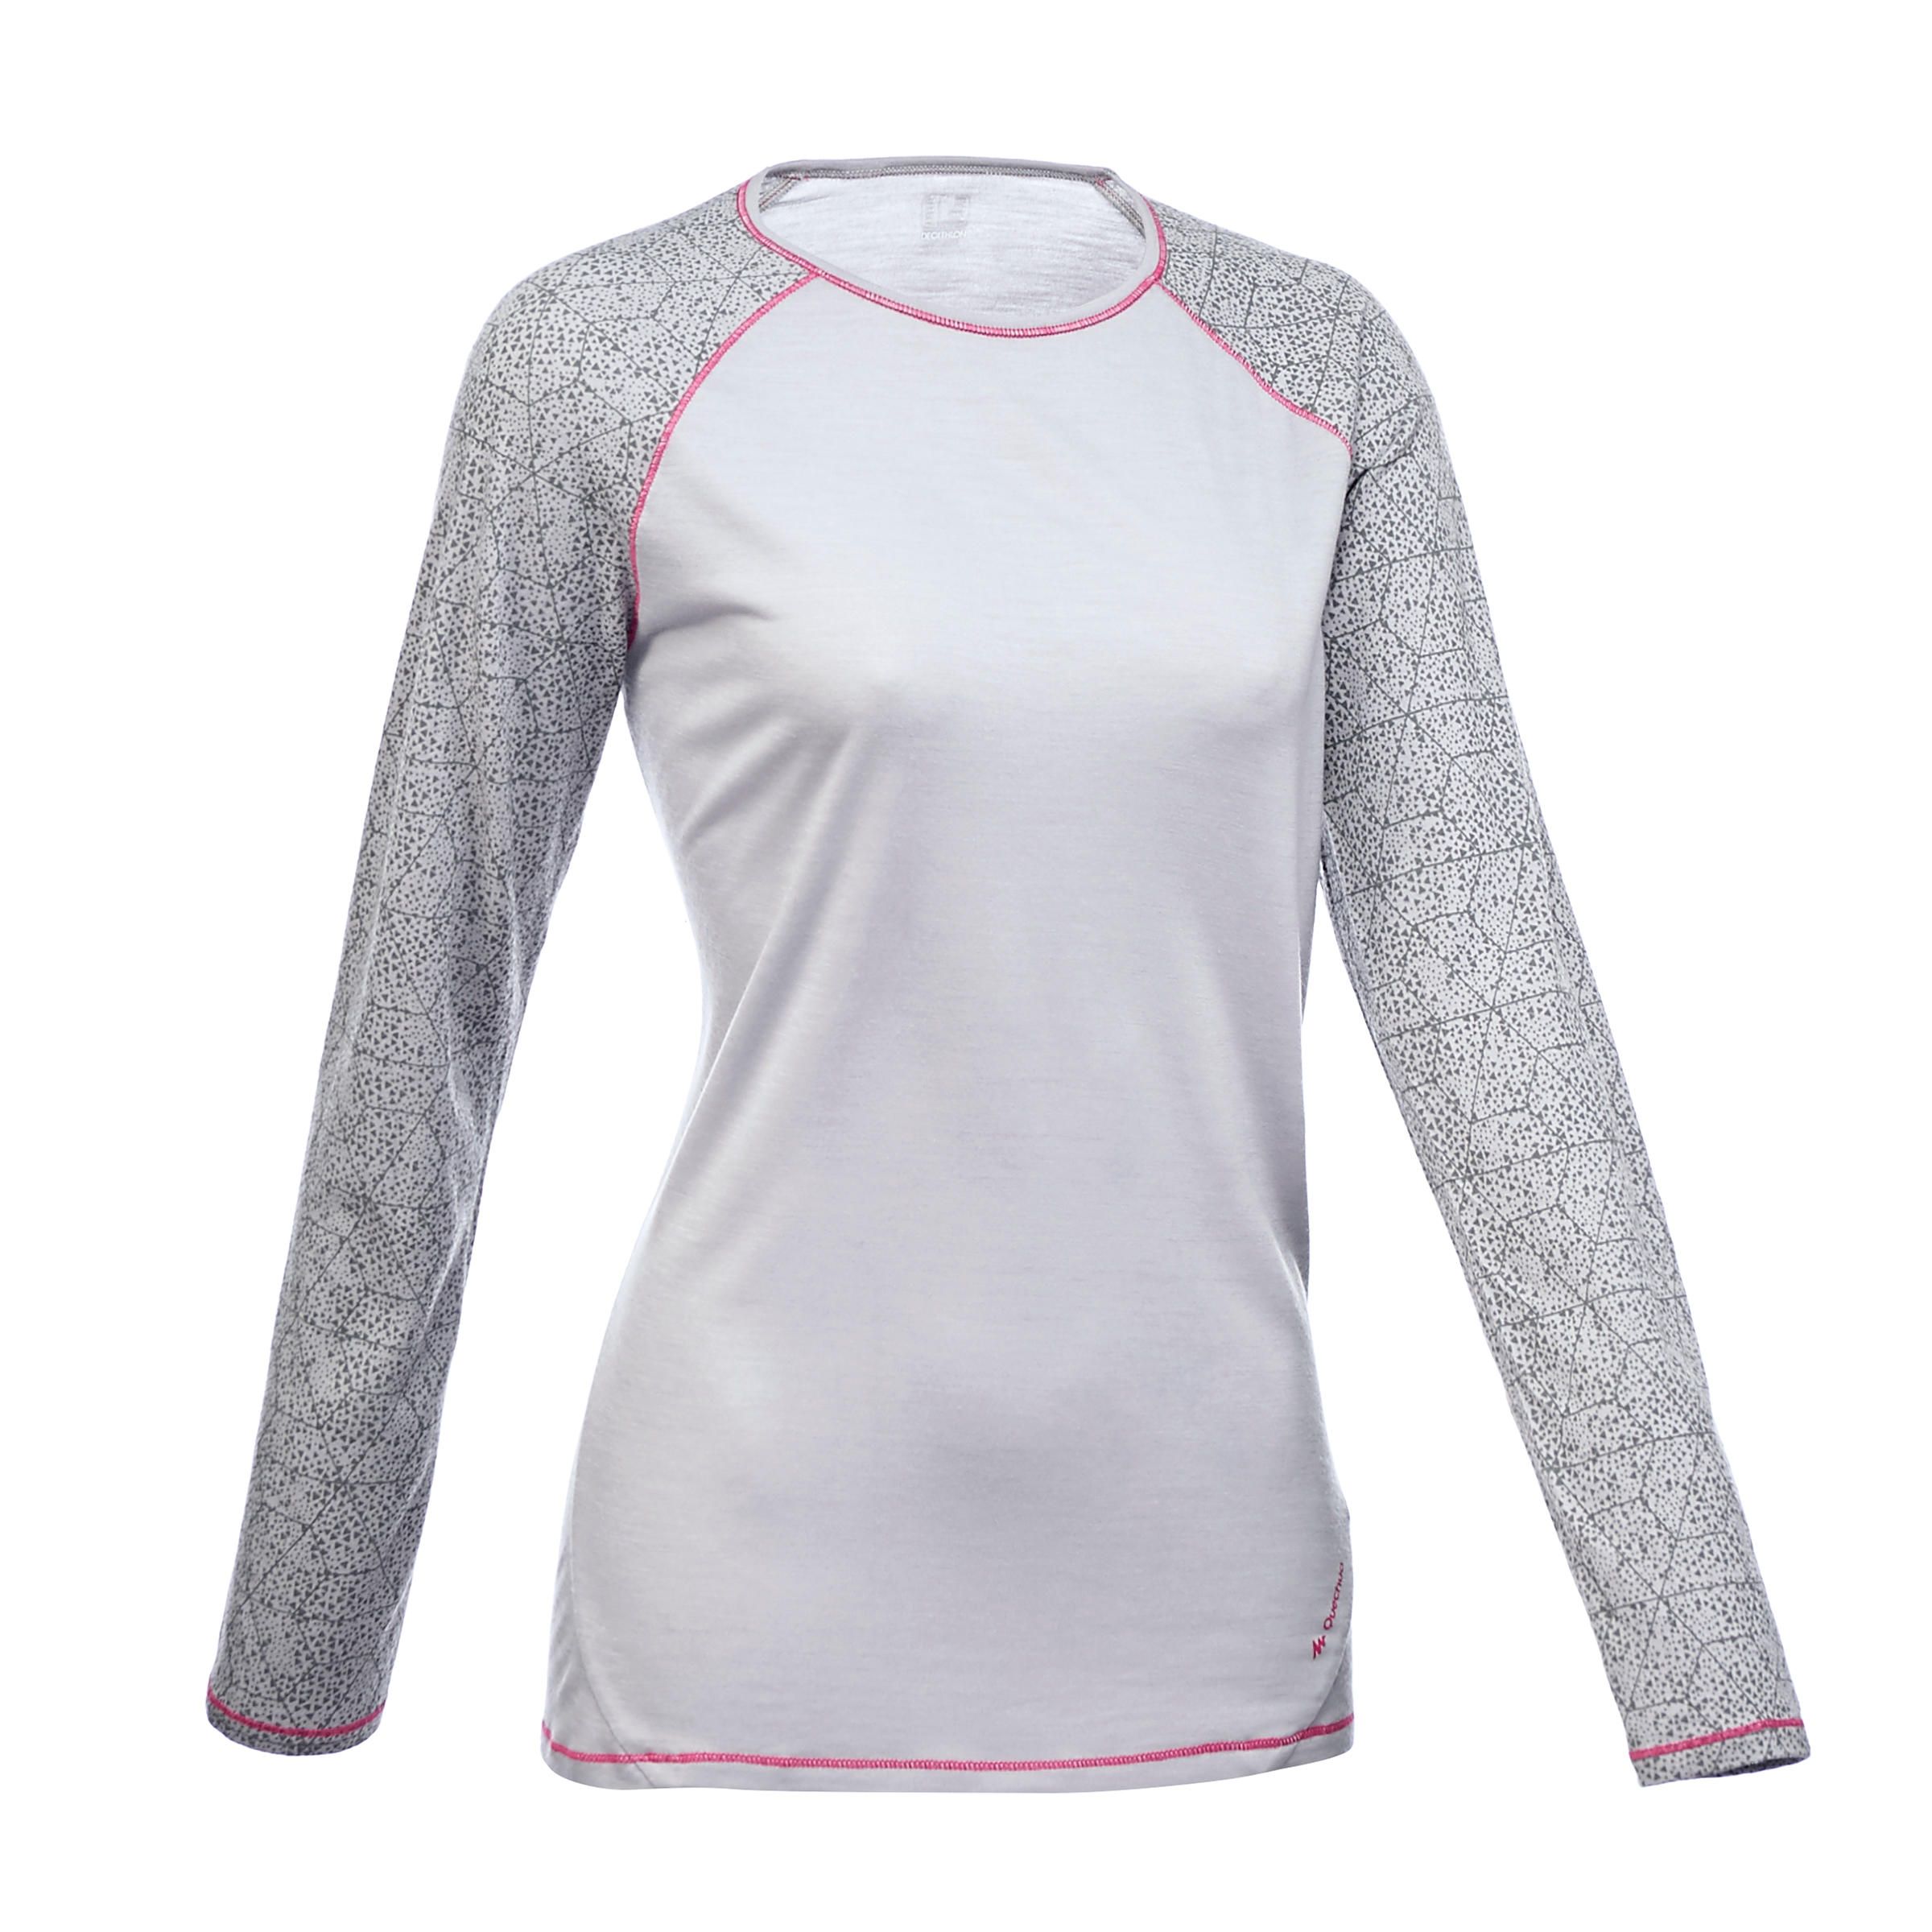 Women's TREK 700 WOOL Long-Sleeved Mountain Trekking T-Shirt - Grey